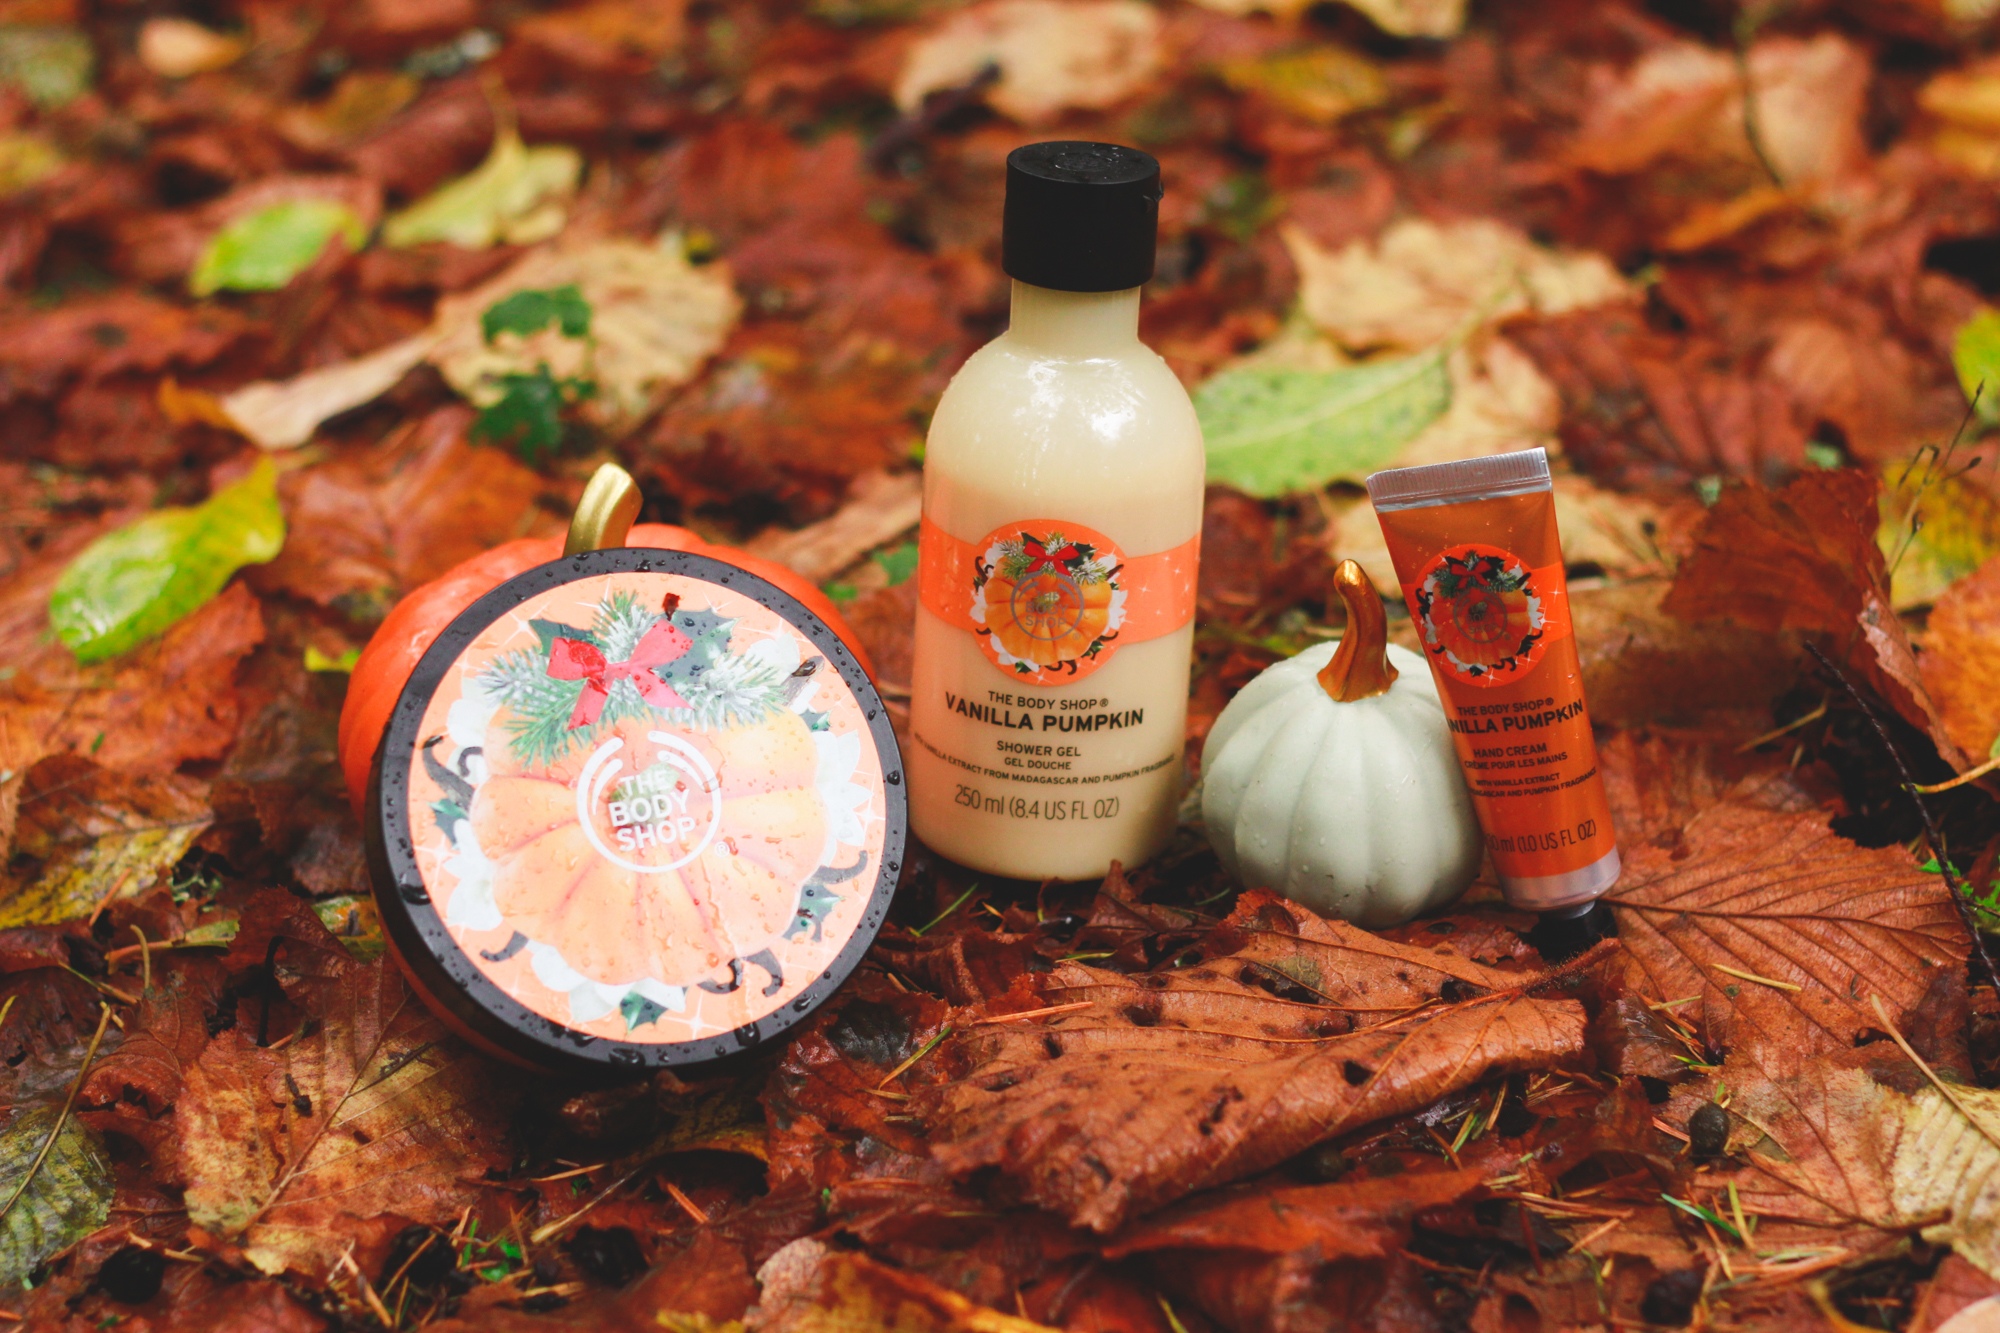 Reminiscing on Autumn | eyreeffect.com